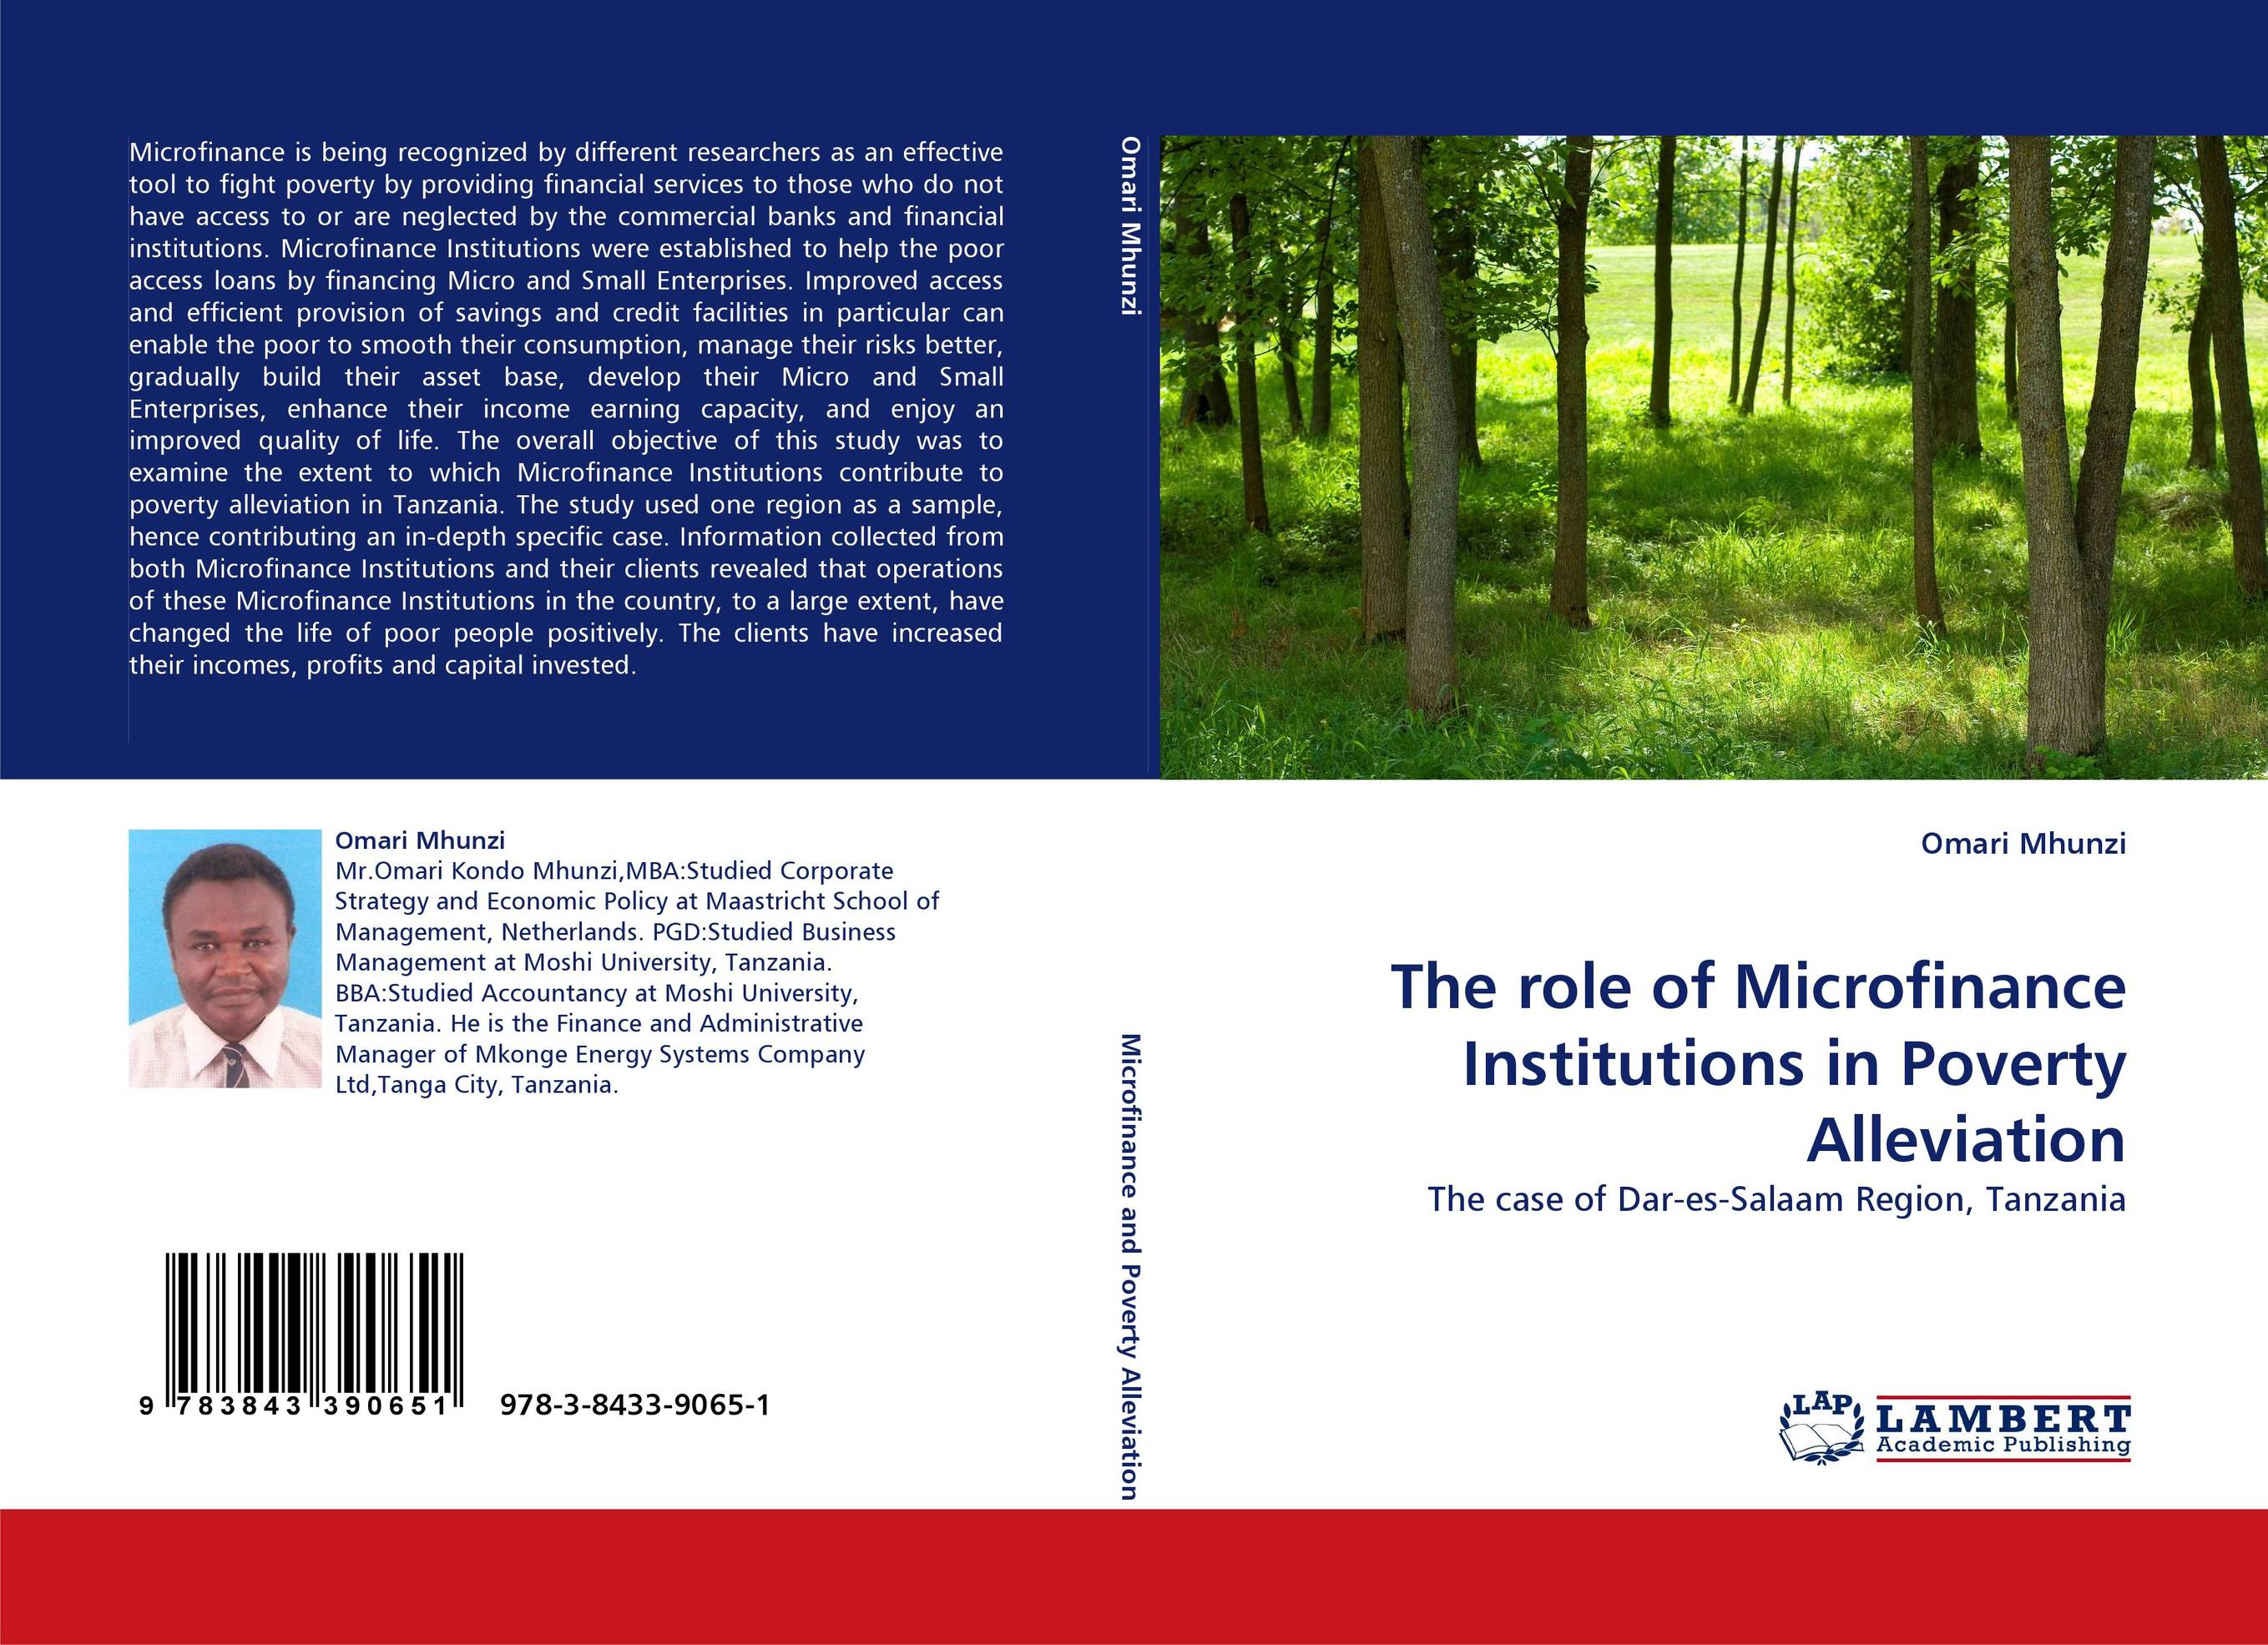 microfinance institution in europe The aim of the study was to evaluate the performance of microfinance institutions in tanzania by integrating financial and nonfinancial performance metrics.